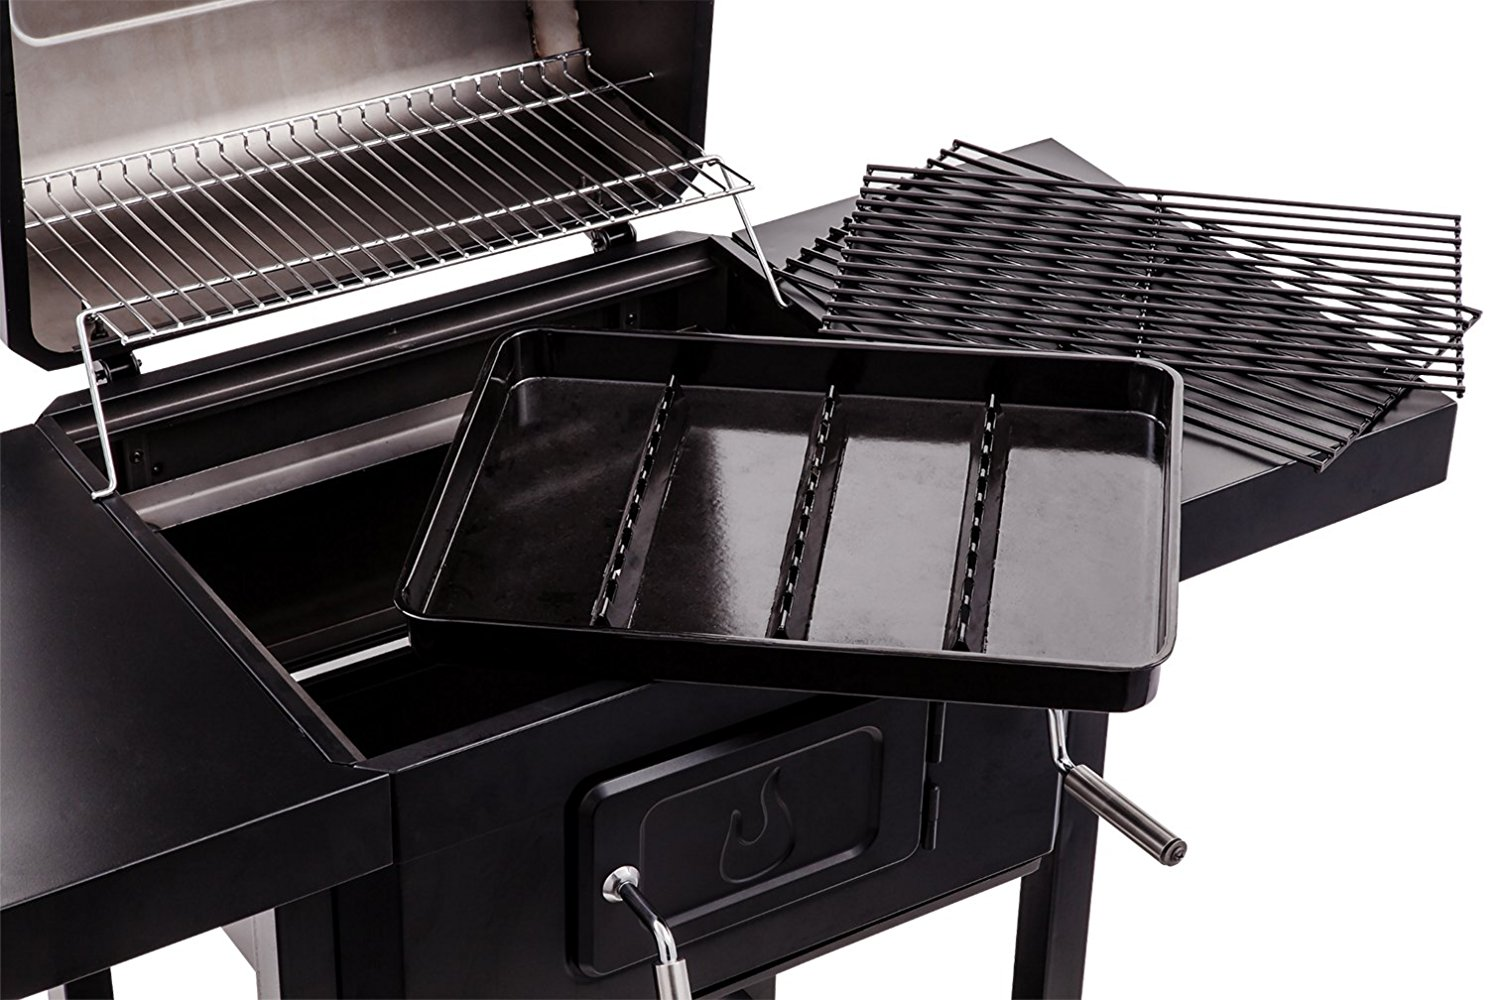 Char Broil Charcoal Grill, 580 Square Inches   Grill Review    DivineGrill.com